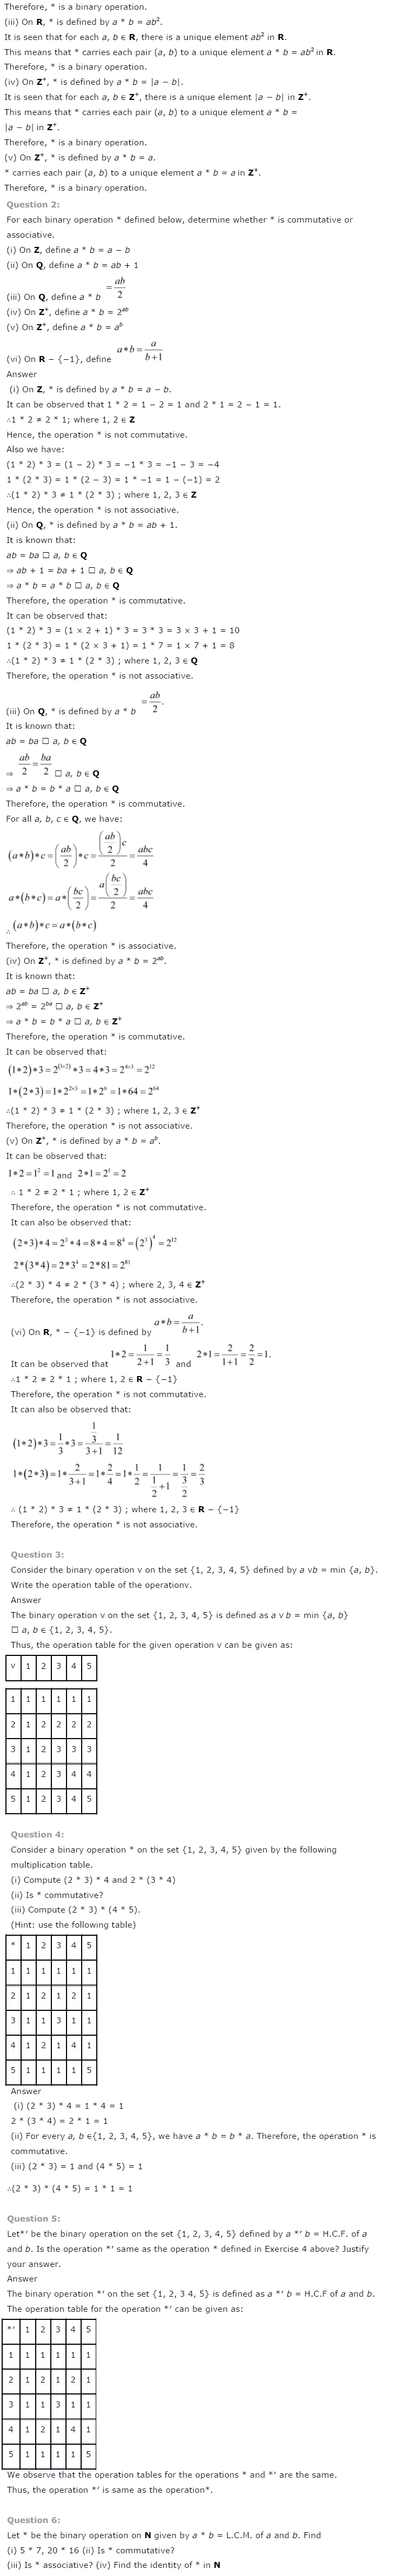 NCERT Solutions For Class 12 Maths Chapter 1 Relations and Functions-8